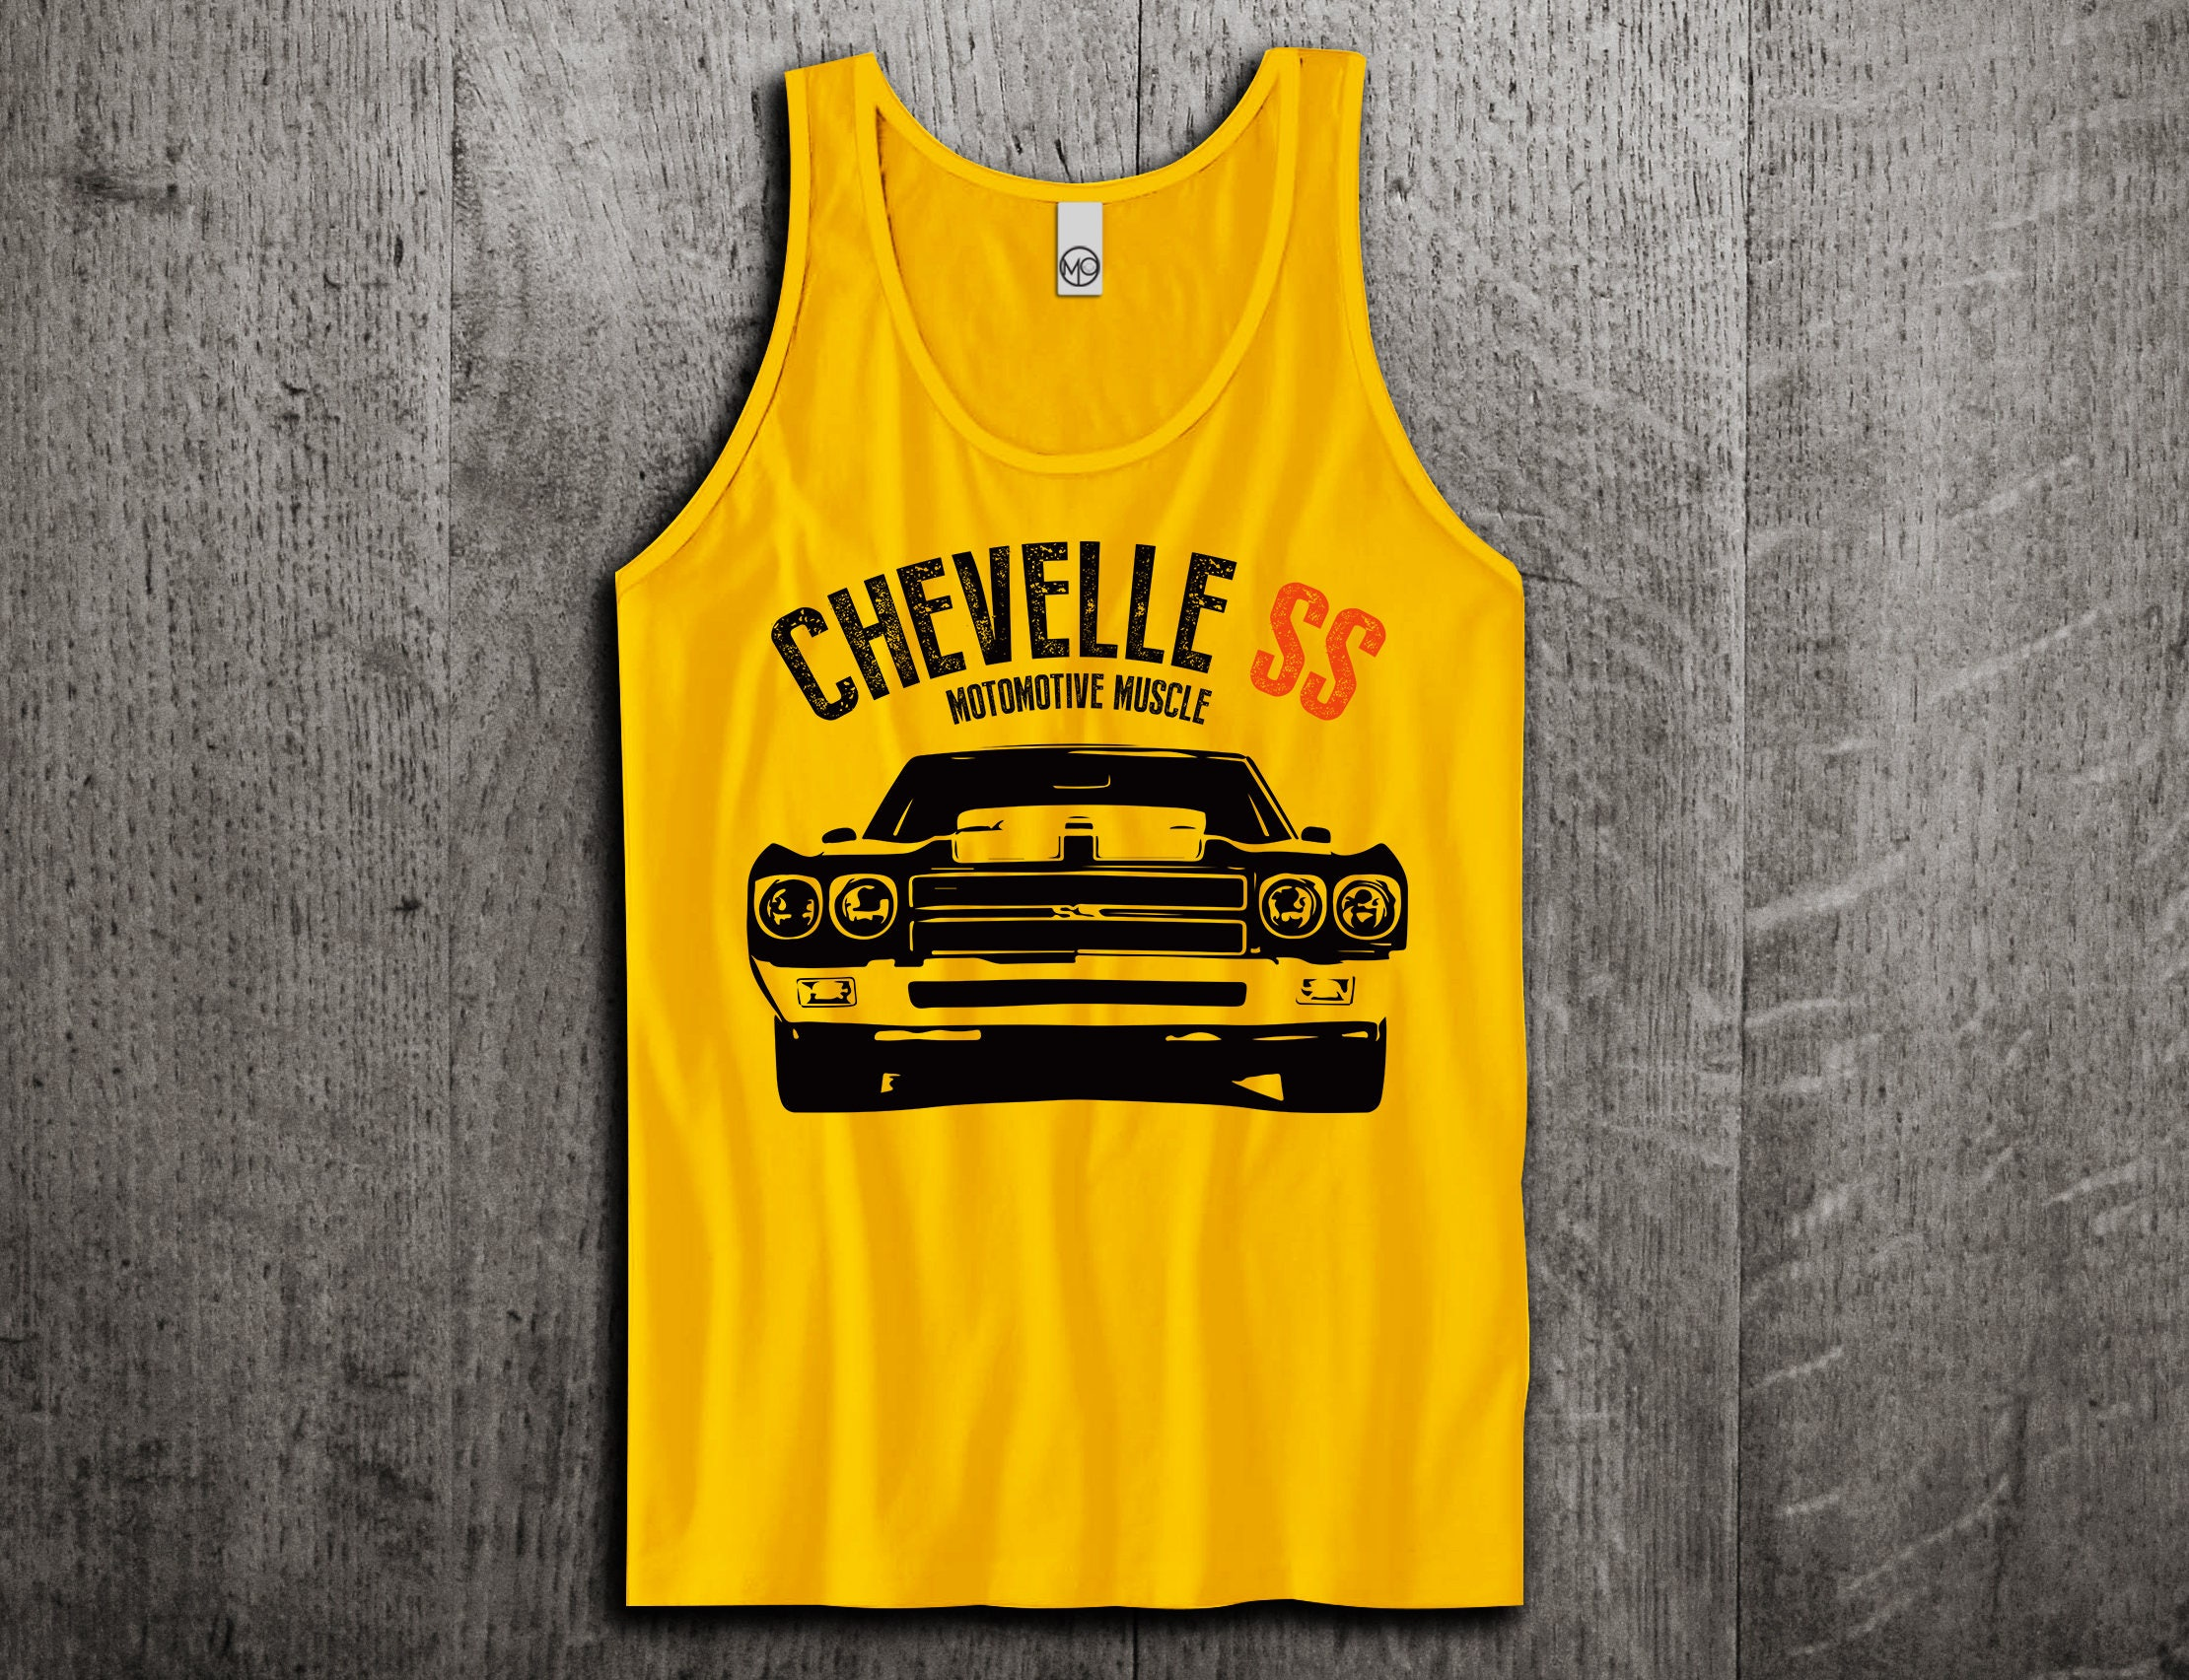 Chevy Chevelle Ss Tank Top Chevy T Shirts Chevy Chevelle Shirts